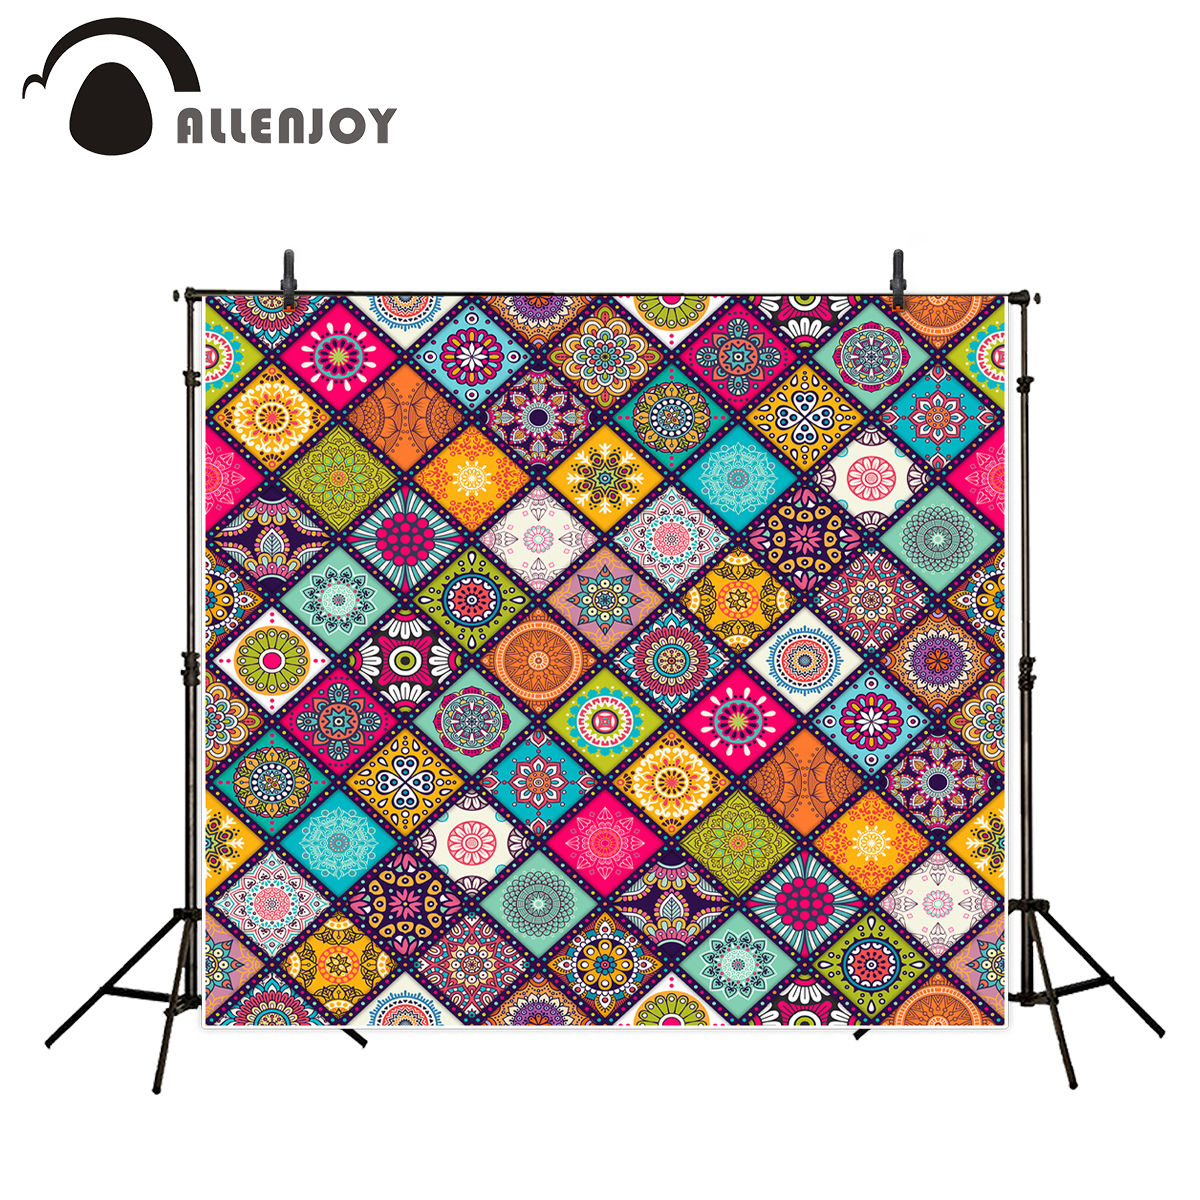 Allenjoy Photographic Background Eid al-Fitr Style photocall Colourful Islam Pattern backdrop Ramadan Kareem camera fotografica islam misrepresented by muslims